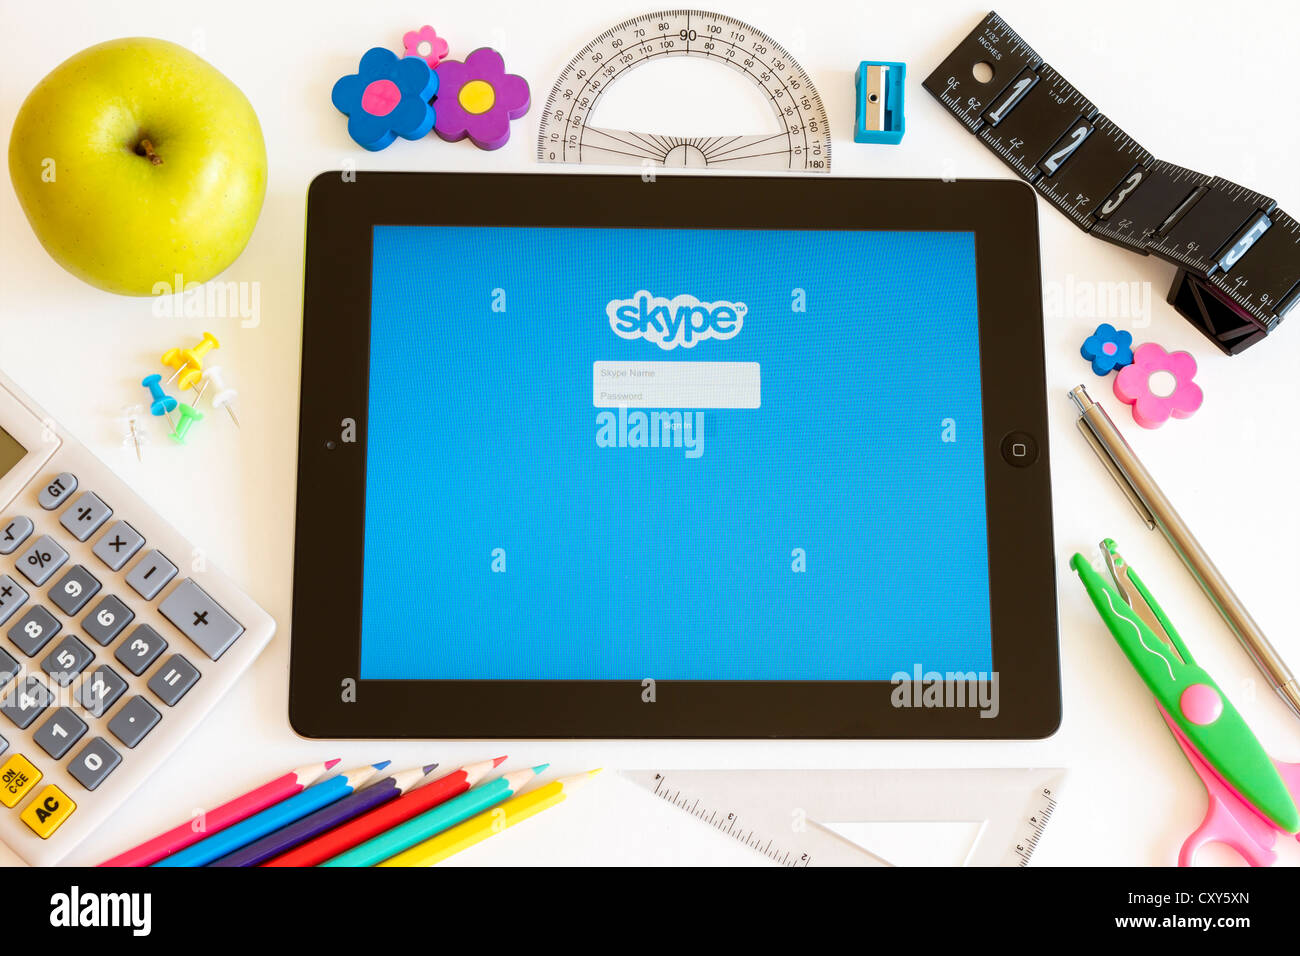 Skype on Ipad 3 with school accesories on white background - Stock Image